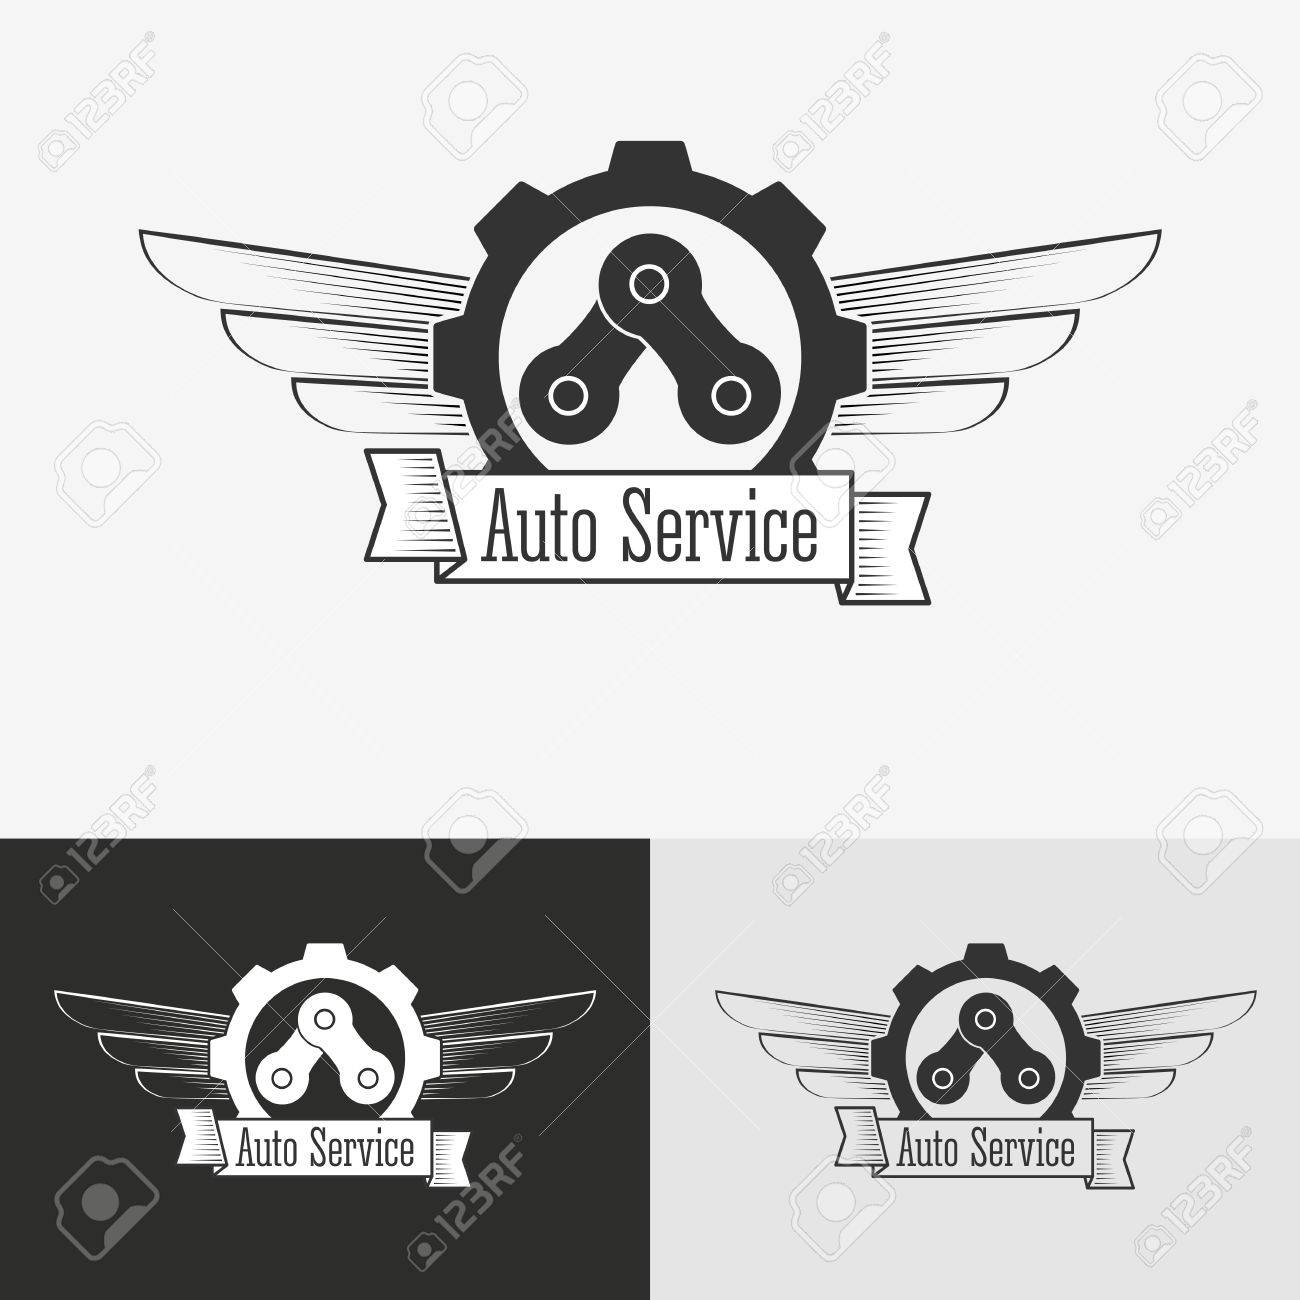 Auto Logo Design Template Concept For Automobile Repair Service Royalty Free Cliparts Vectors And Stock Illustration Image 49480808